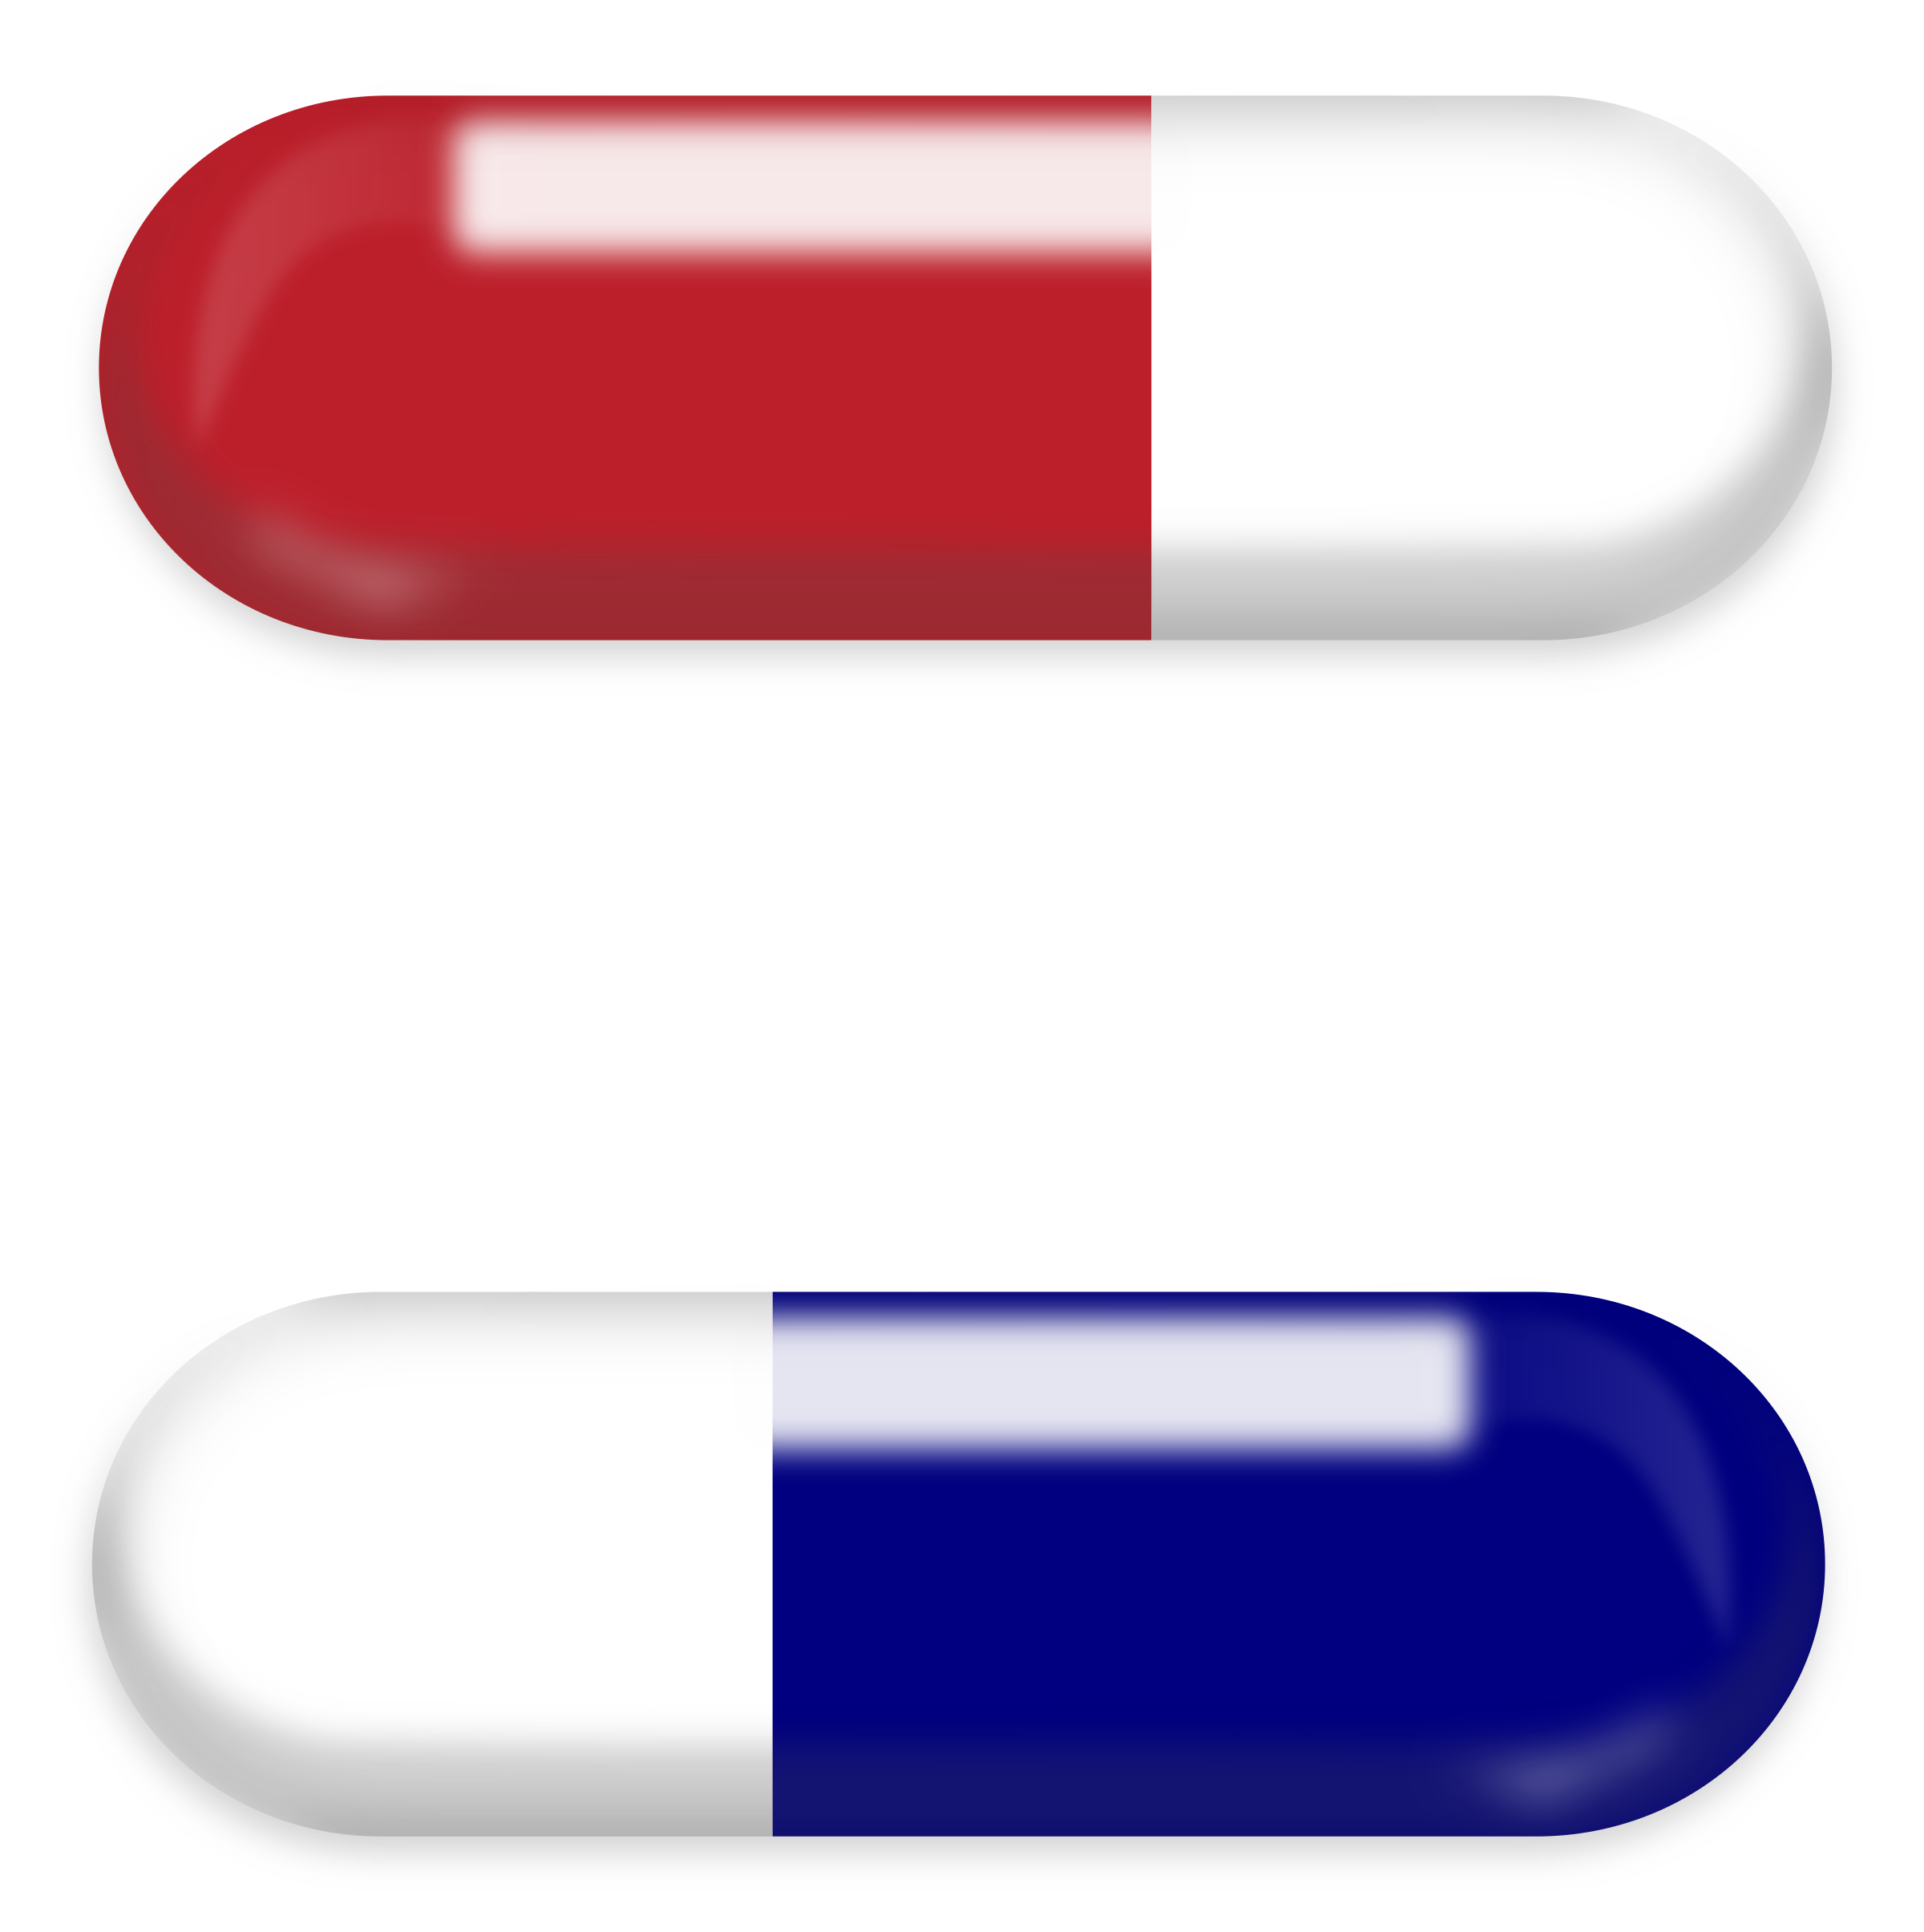 Pill transparent generic. Pills icons png free